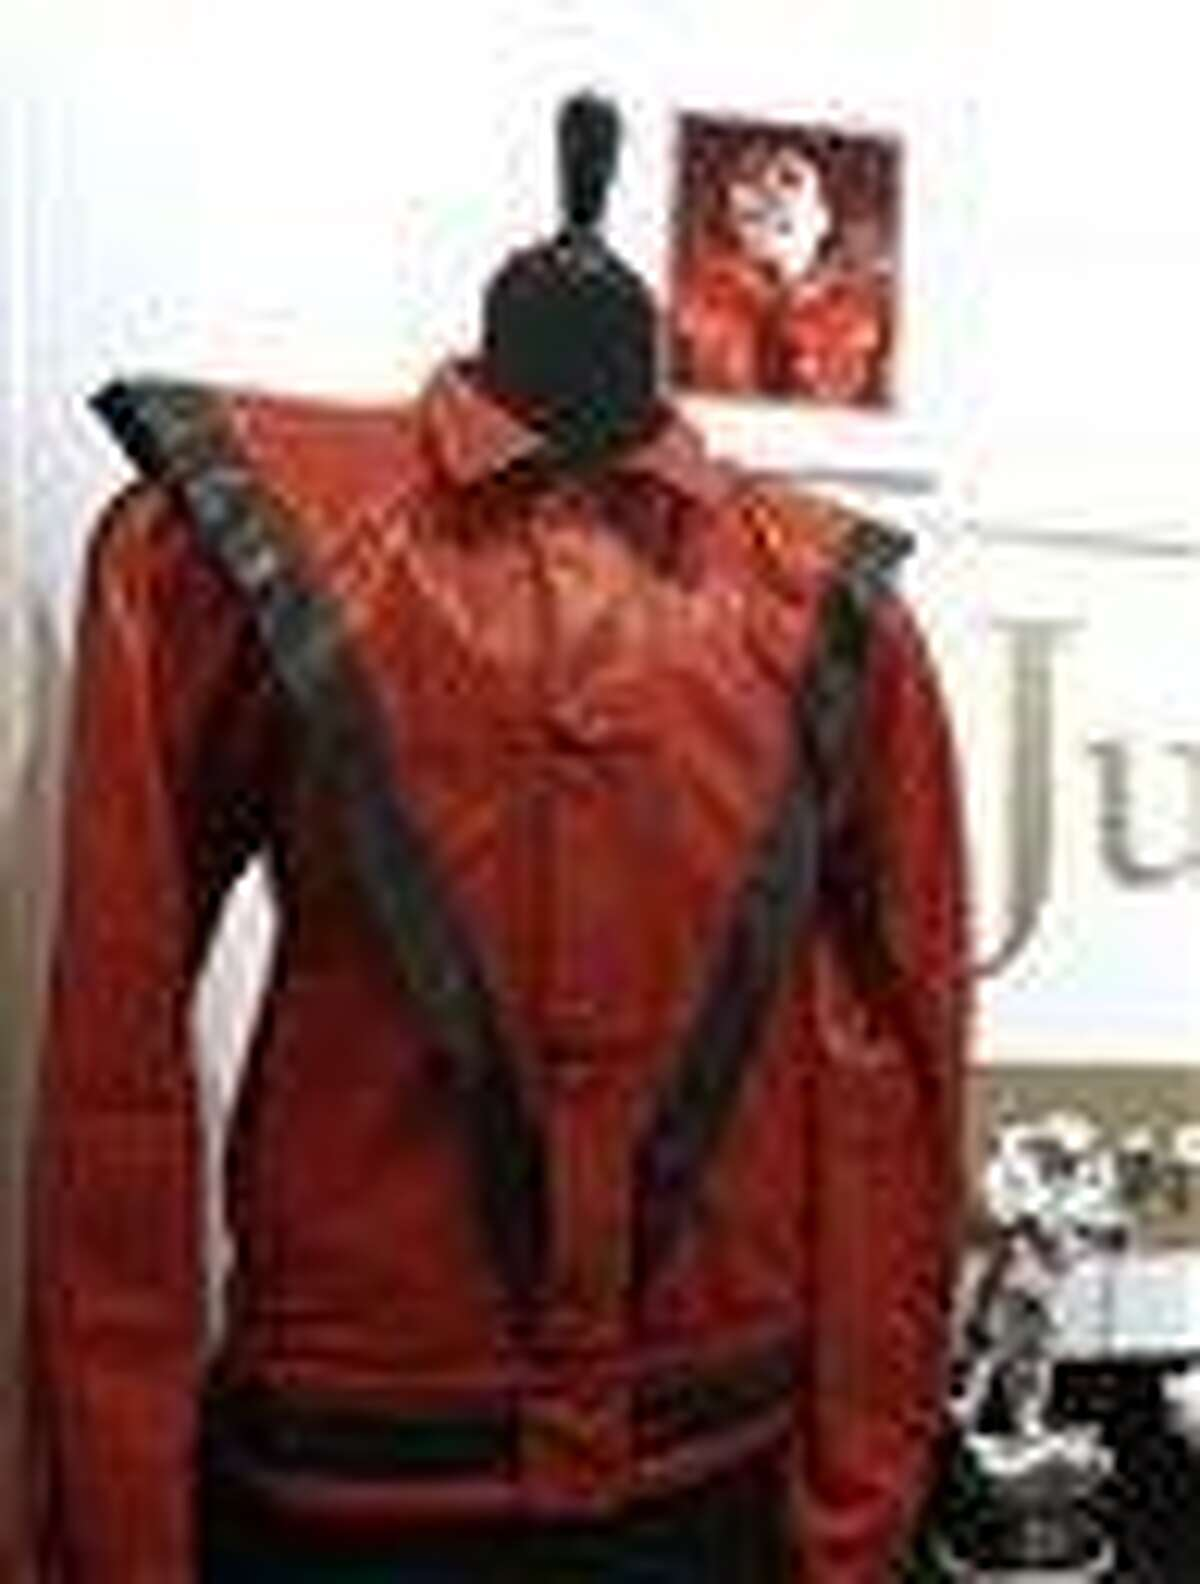 """In this photo taken May 26, 2011, a worn and signed """"Thriller"""" Jacket that belonged to Michael Jackson is shown at Julien's Auctions, in Beverly Hills, Calif. The famed black-and-red calfskin jacket that Jackson wore in the classic """"Thriller"""" video has sold for $1.8 million. Darren Julien, president and CEO of Julien's Auctions in Beverly Hills, says the jacket was purchased Sunday, June 26, 2011, by Milton Verret, a commodities trader from Austin, Texas. (AP Photo/Matt Sayles)"""